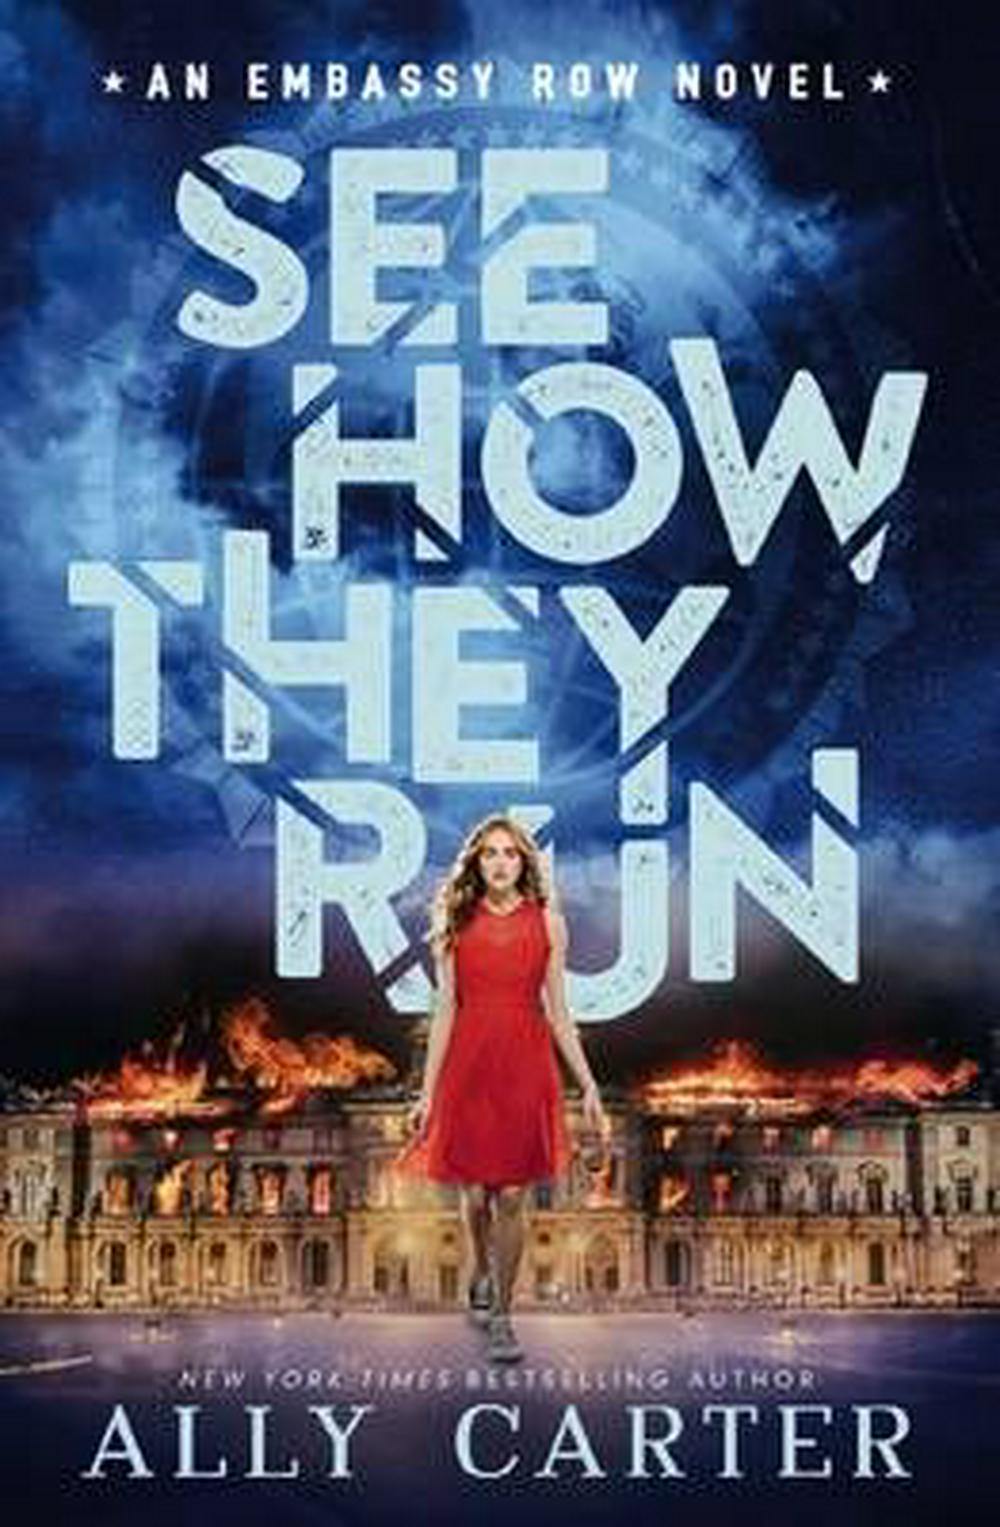 Embassy Row#2 See How They Run by Ally Carter, ISBN: 9781760153571